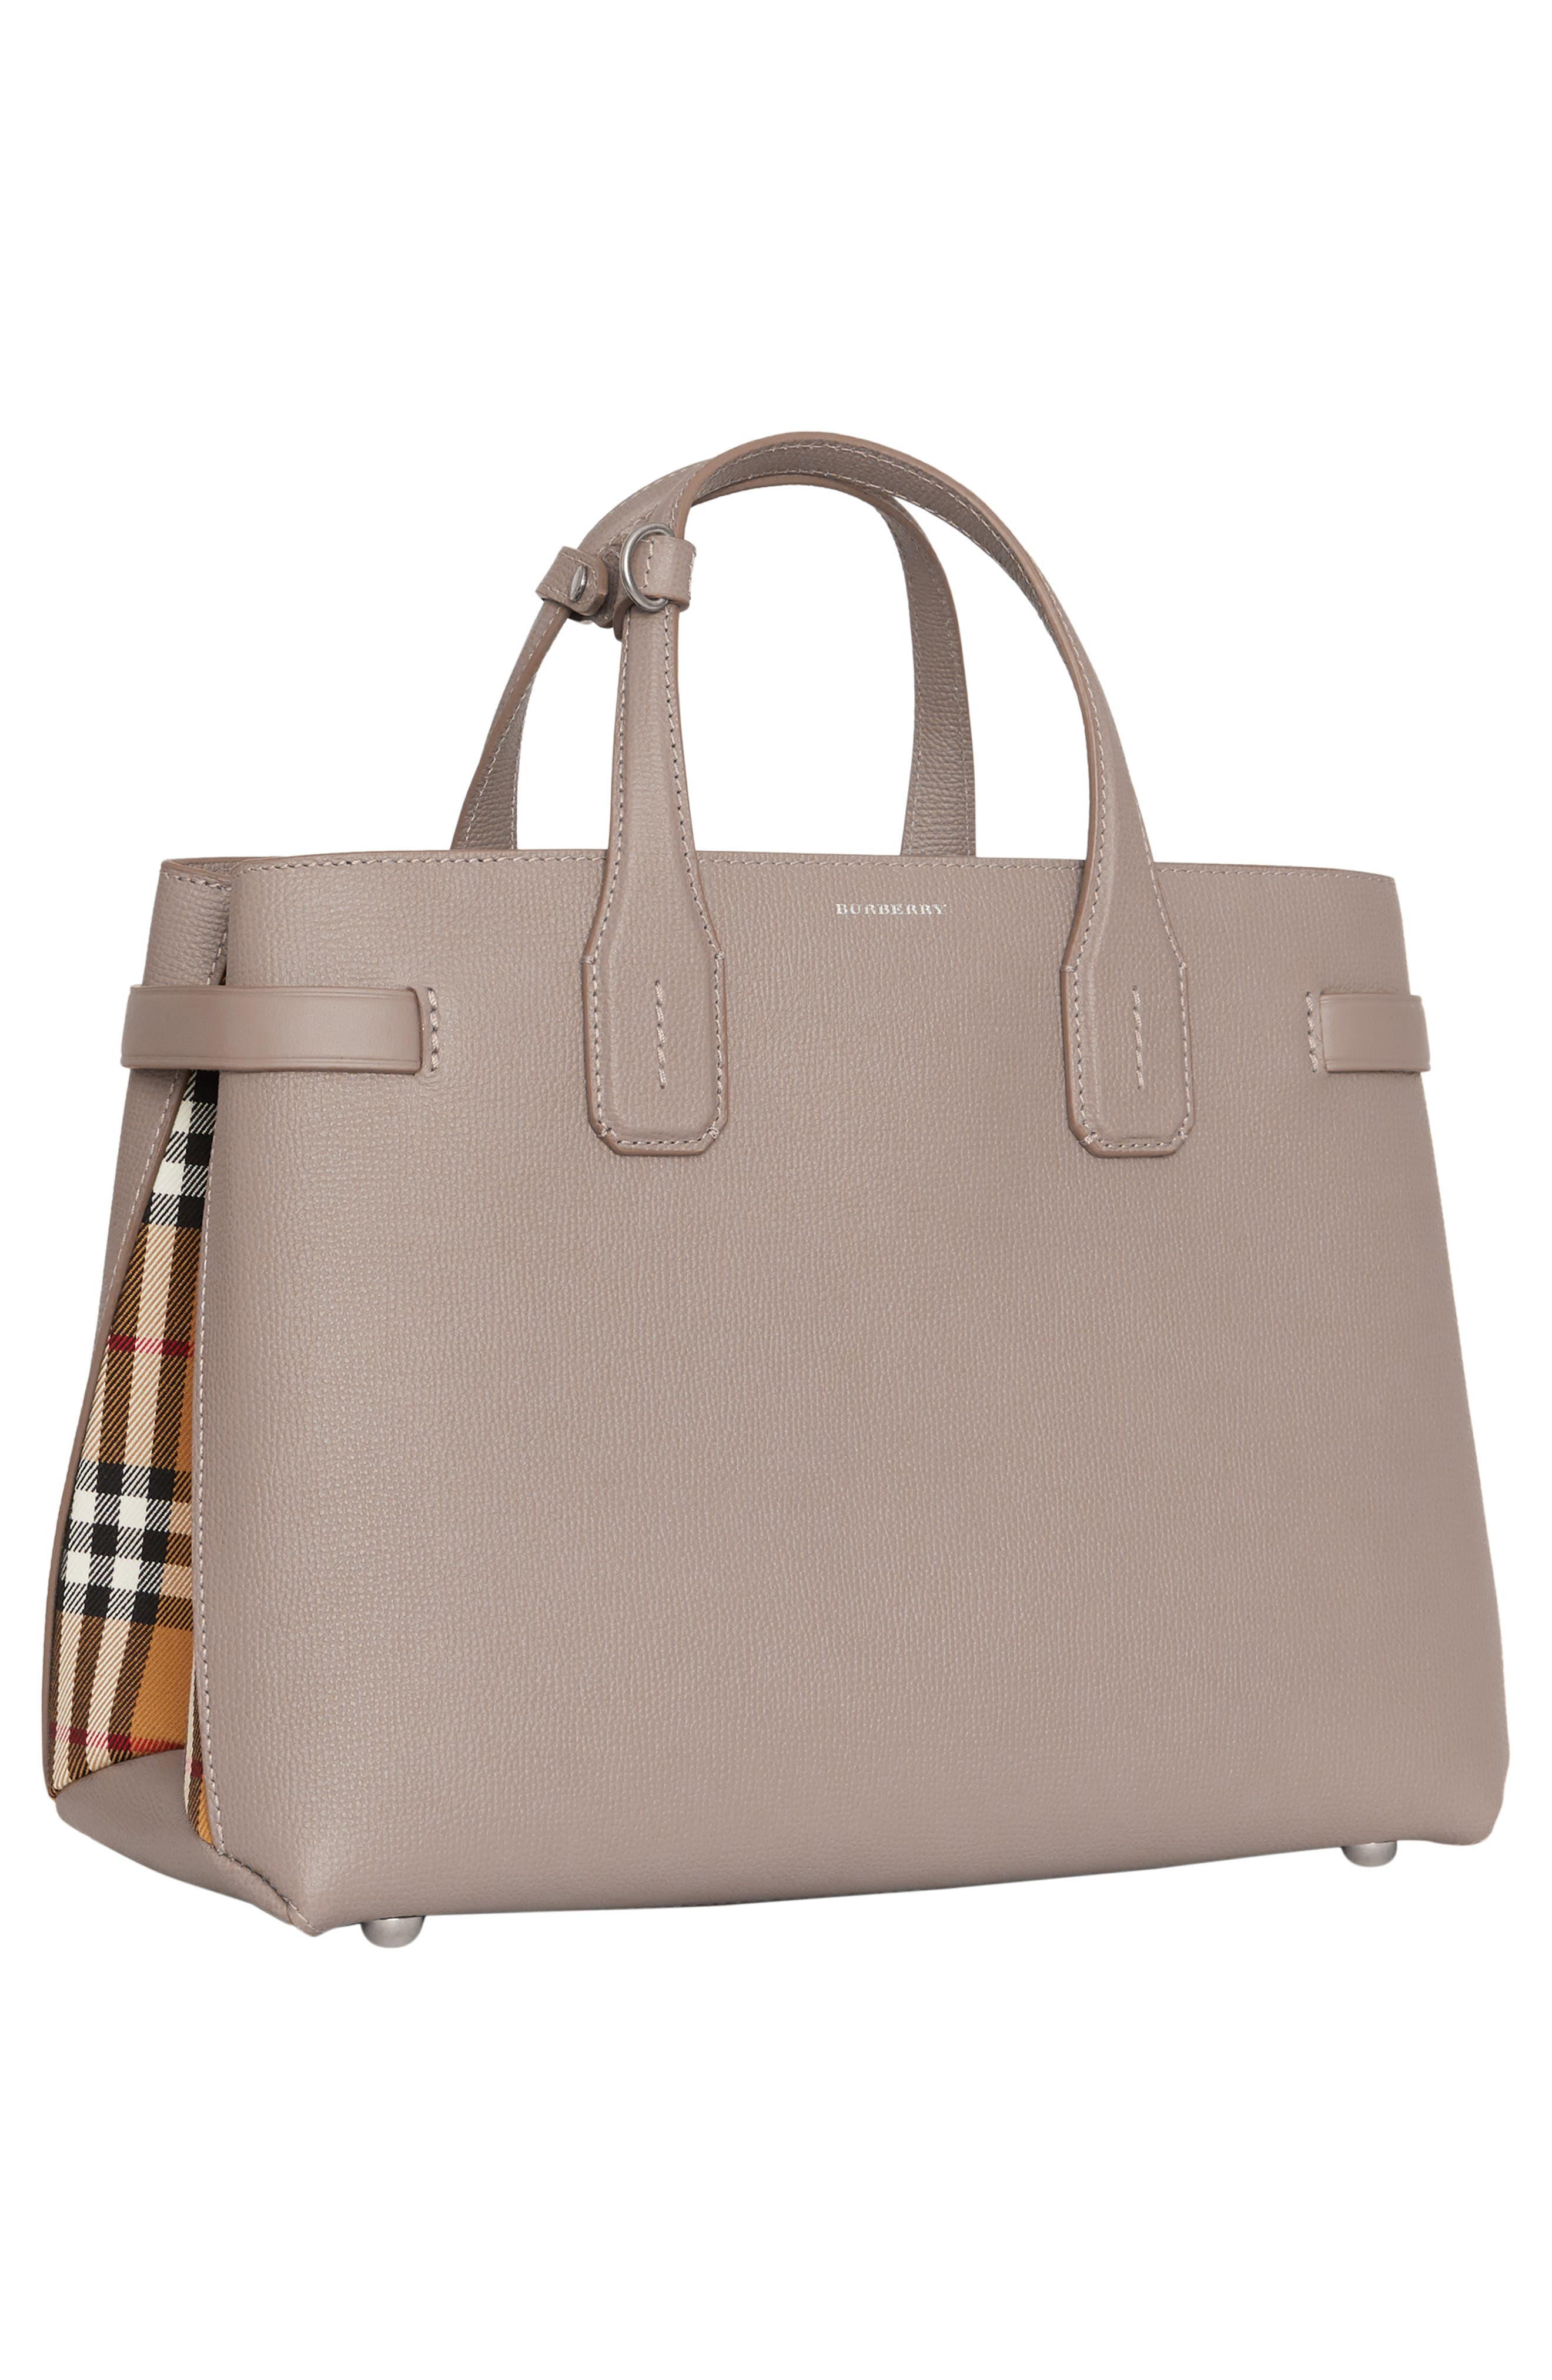 Medium Banner Leather Tote,                             Alternate thumbnail 5, color,                             TAUPE BROWN